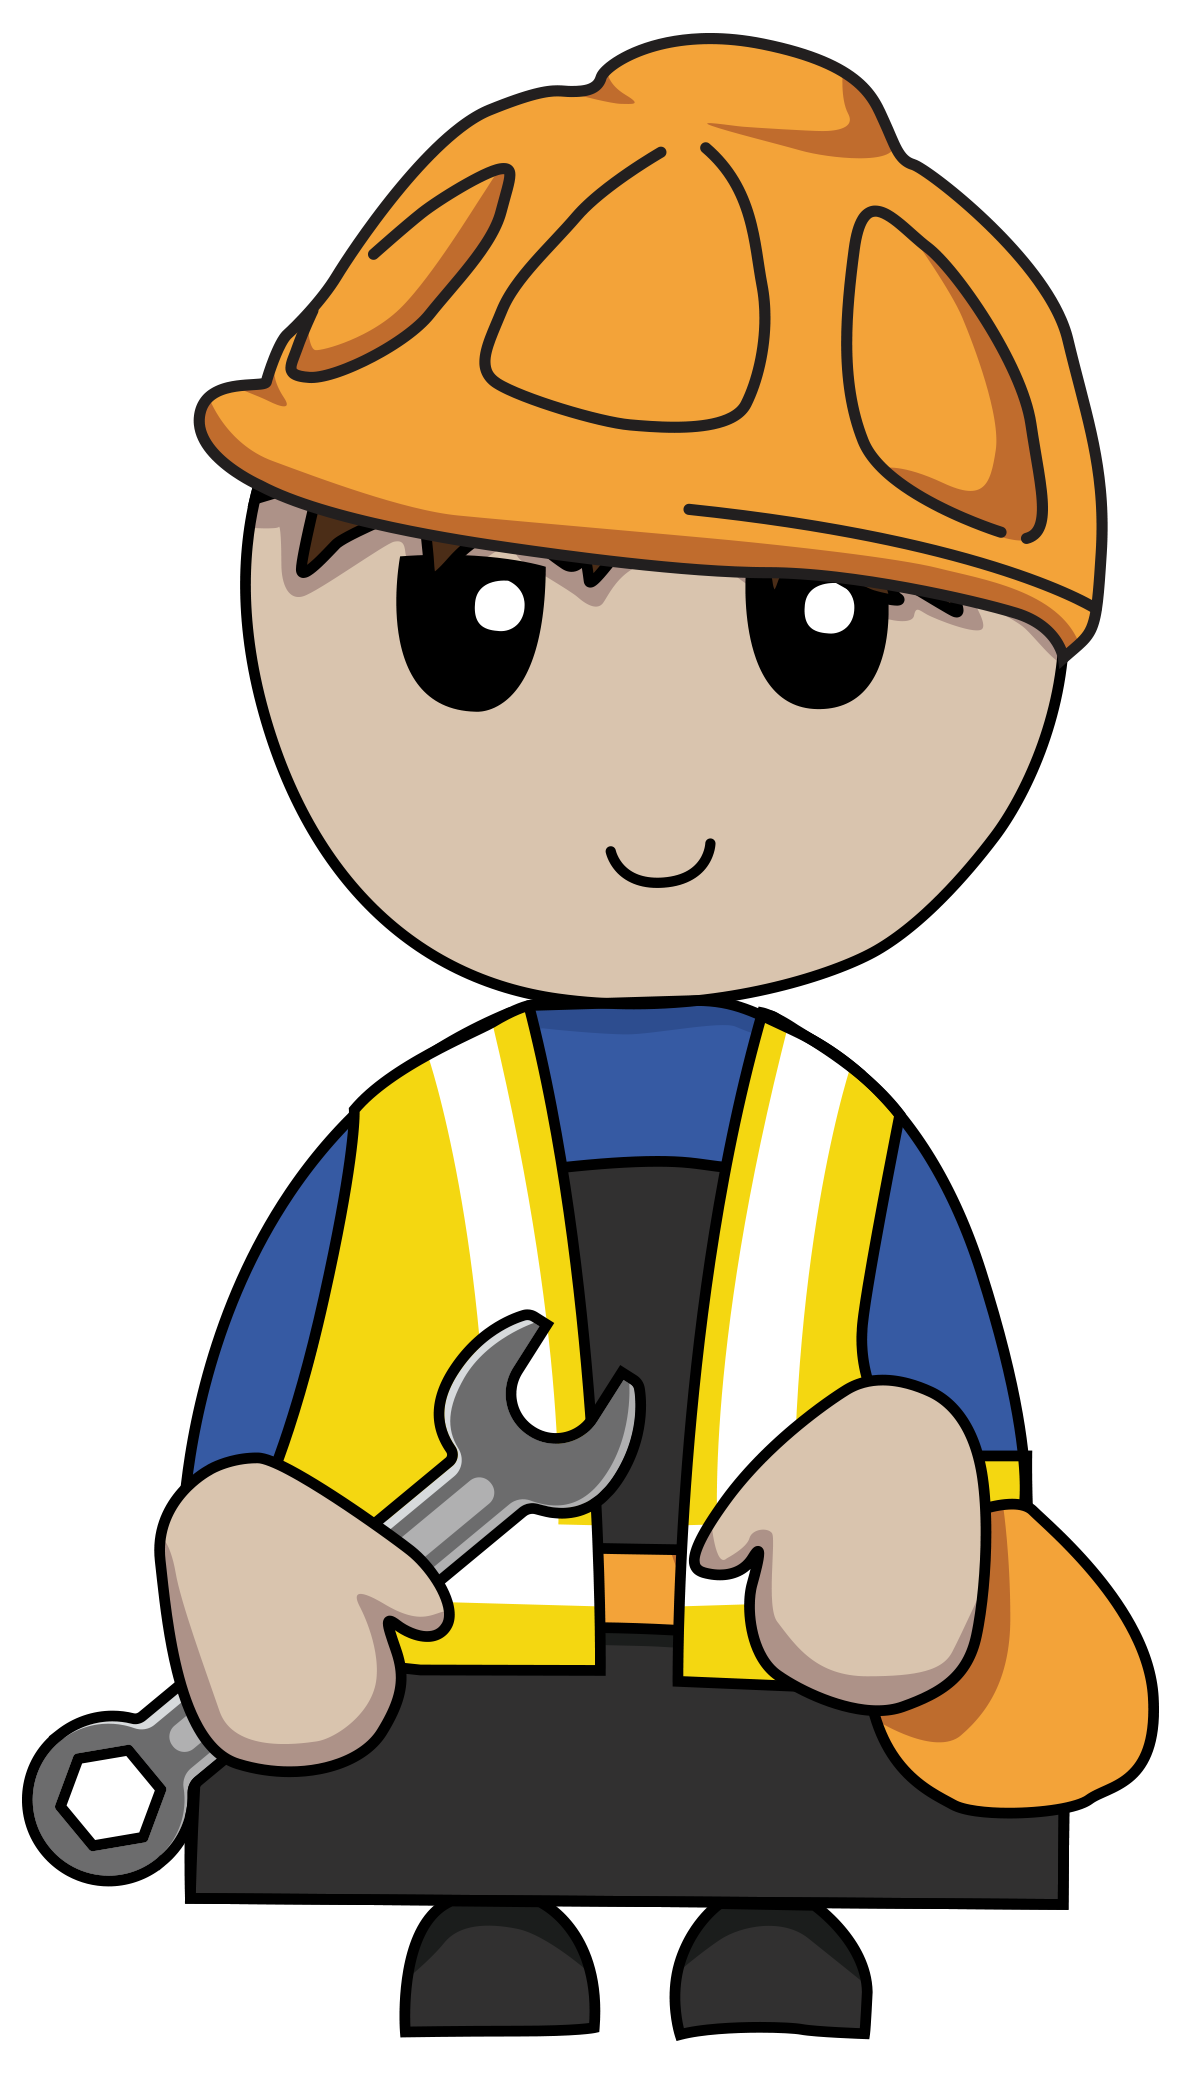 Are you due a. Contractor clipart boy